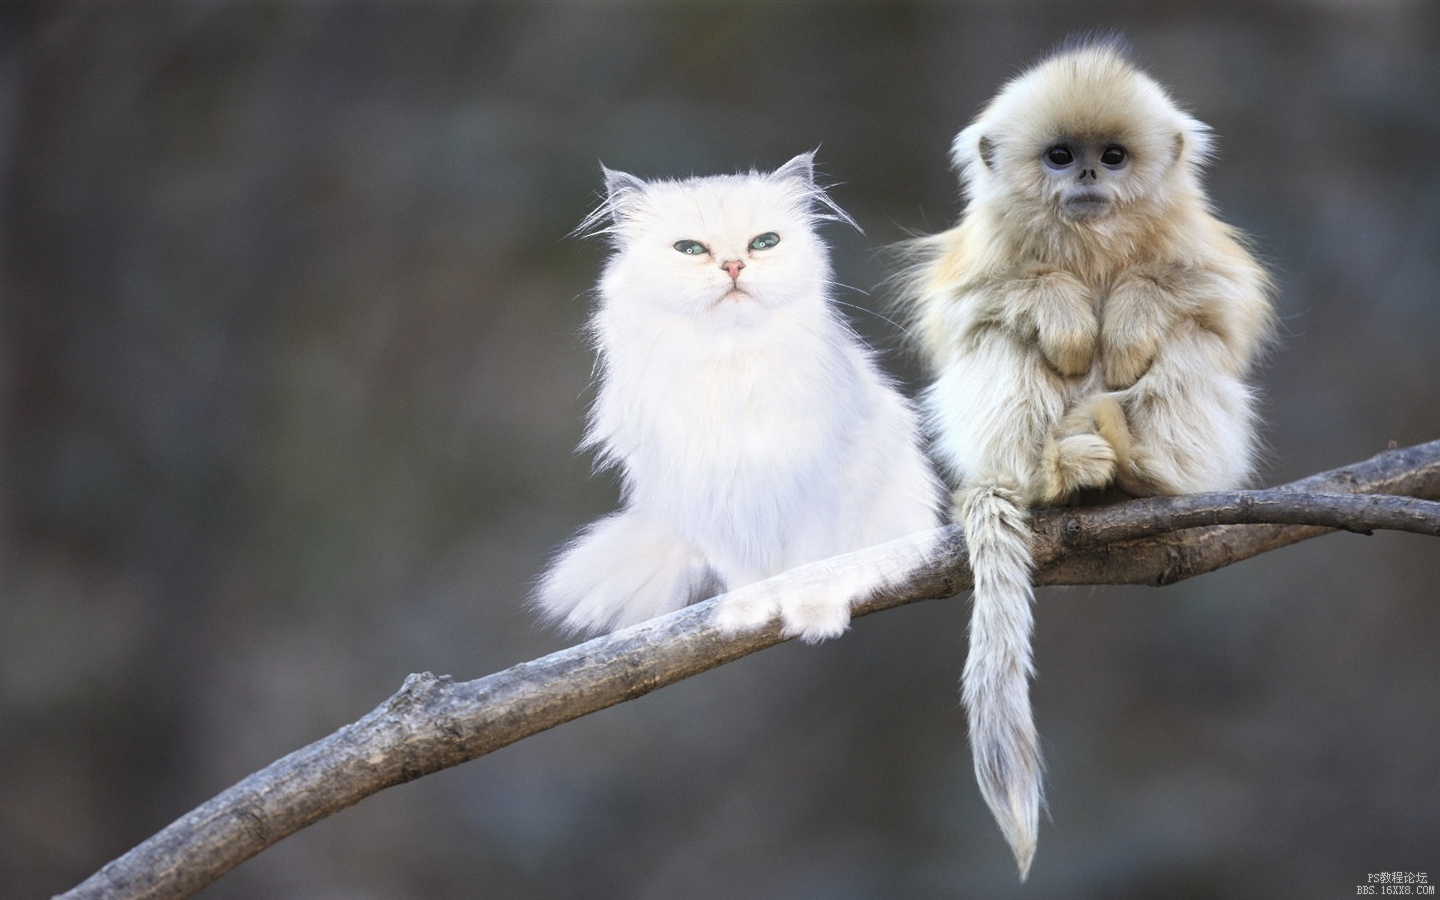 Cute-shaggy-macaque_1440x900 拷贝.jpg